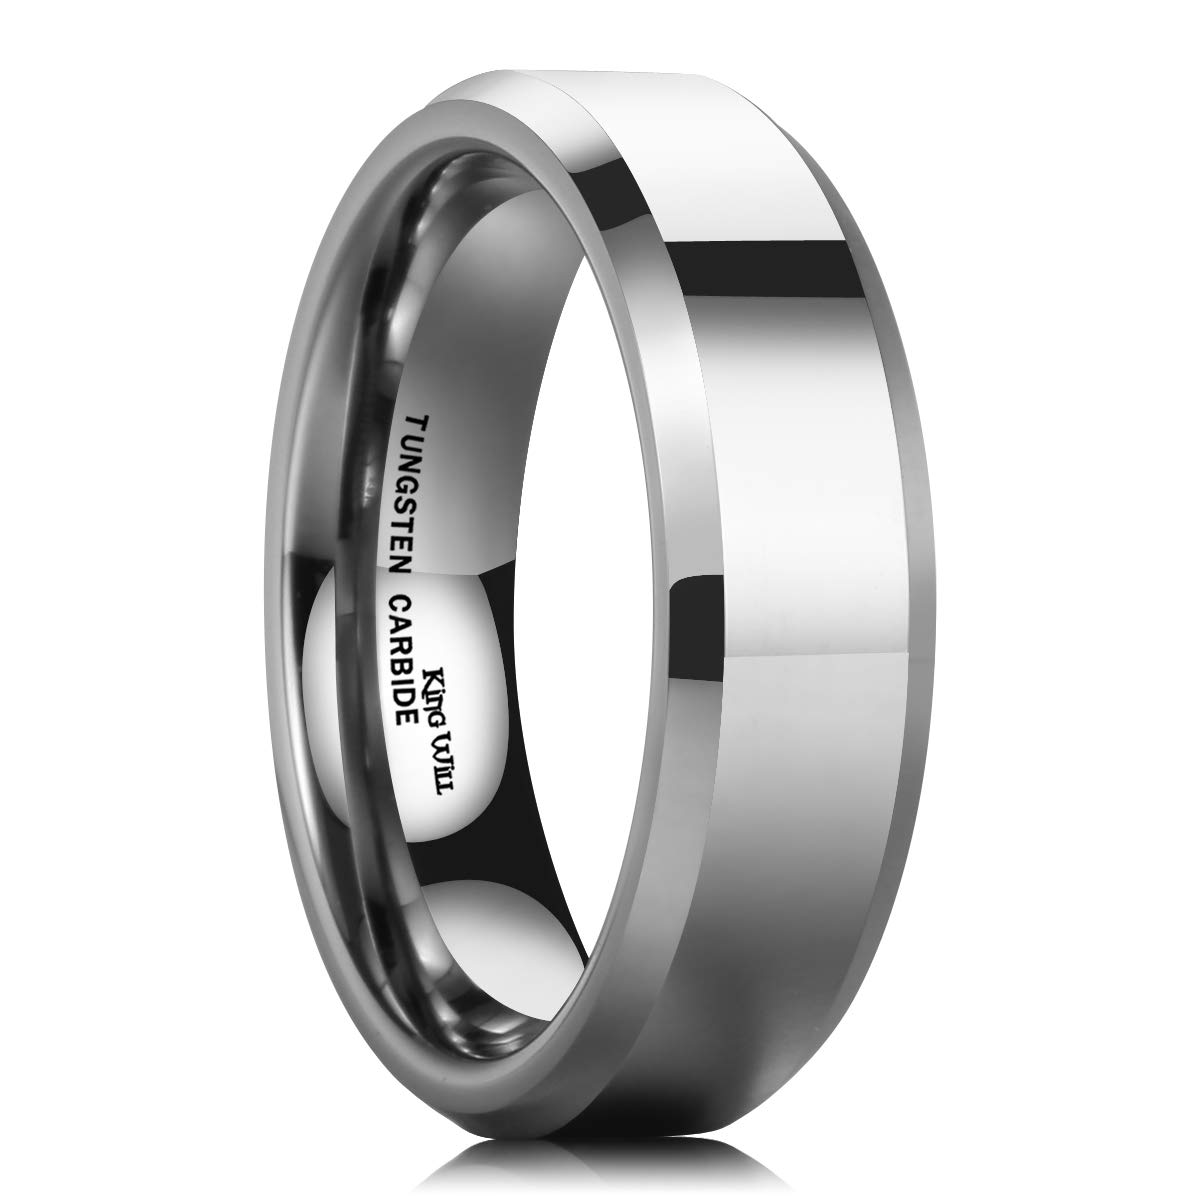 King Will Basic Mens 6mm Tungsten Carbide Ring High Polished Finish Comfort Fit Classic Wedding Band Beveld Edge (9.5)